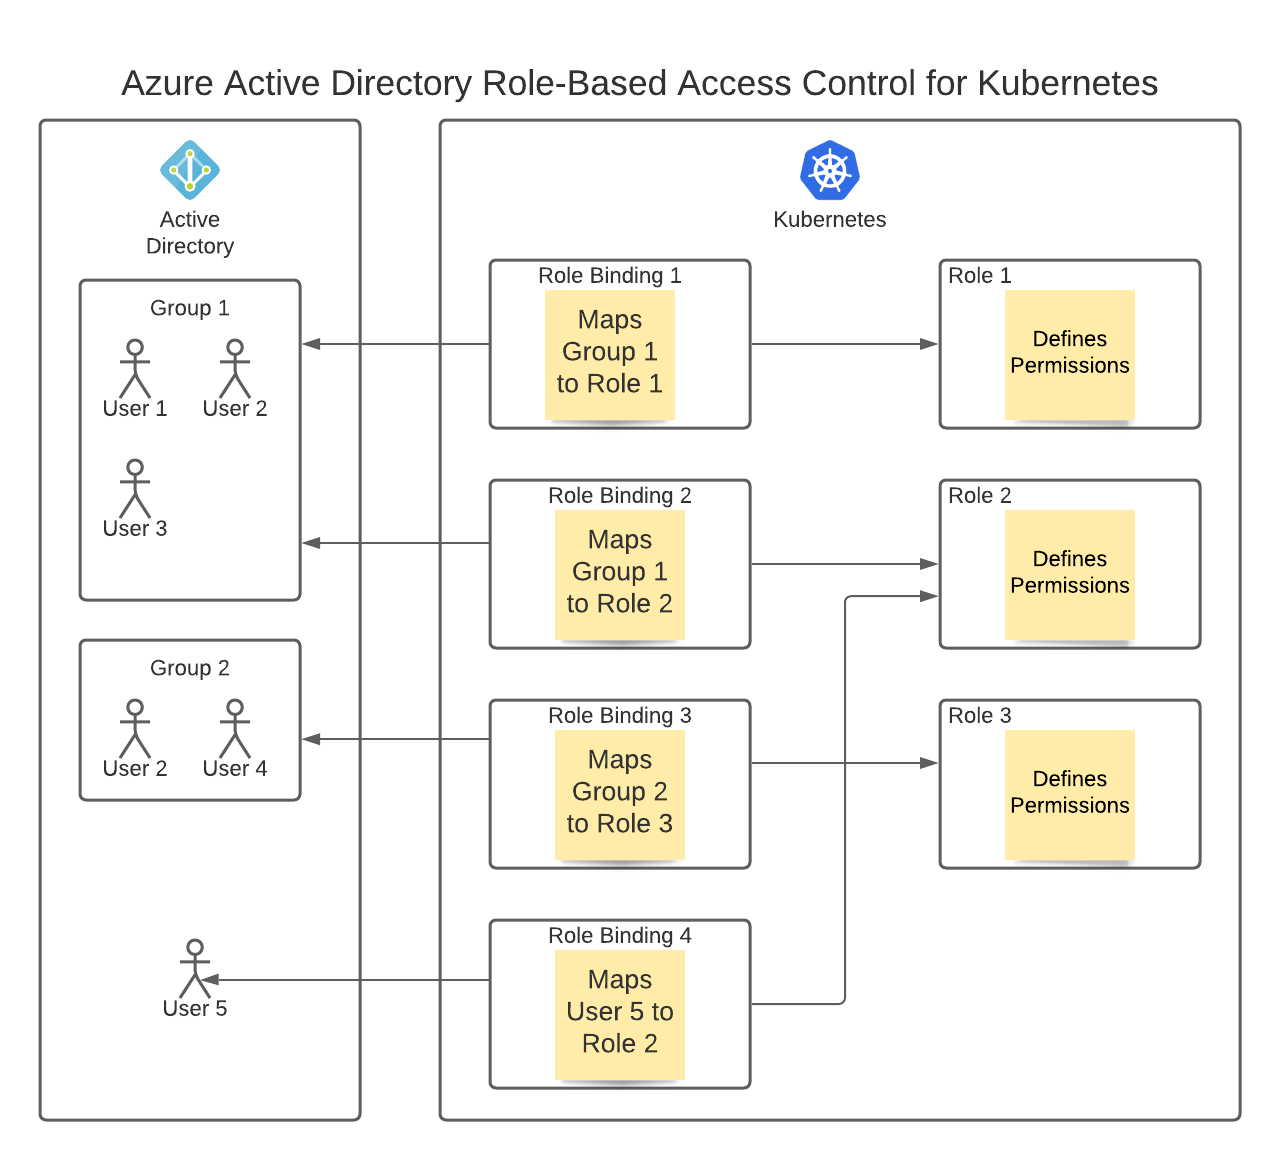 Image of Azure Active Directory for Kubernetes Role-Based Access Control